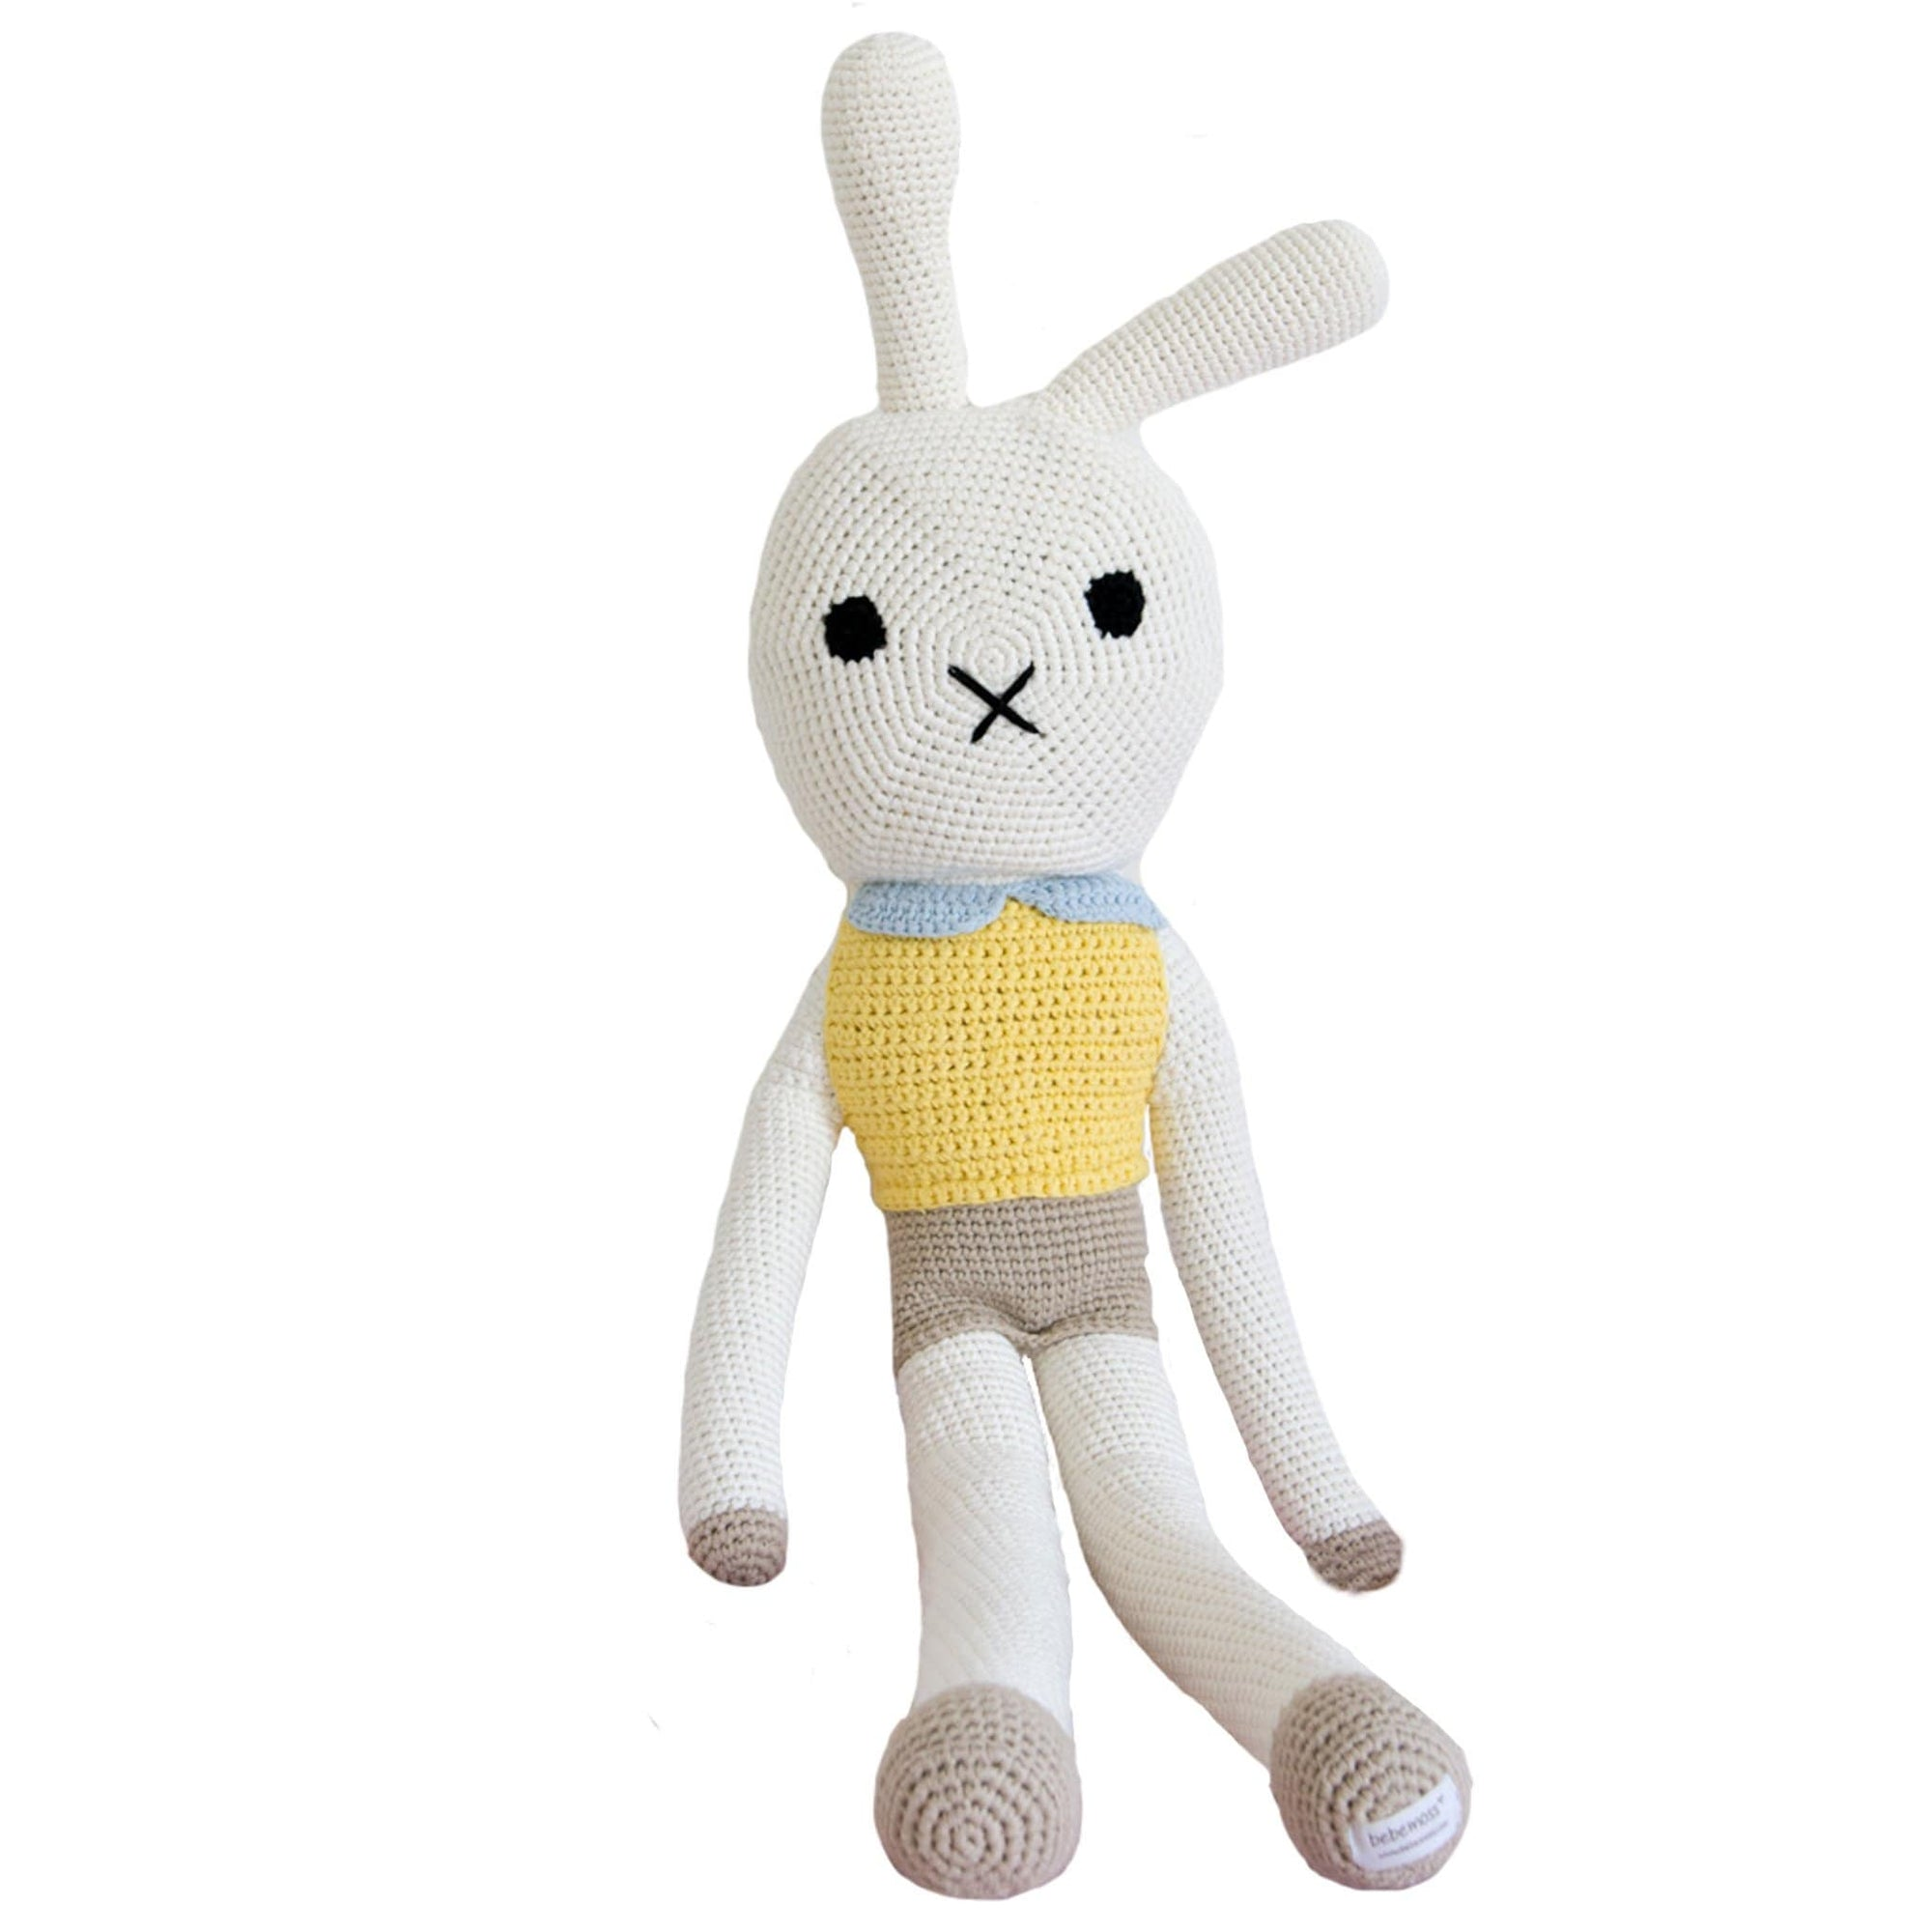 bebemoss.com toy Big friend rabbit handmade by moms  gifts with purpose